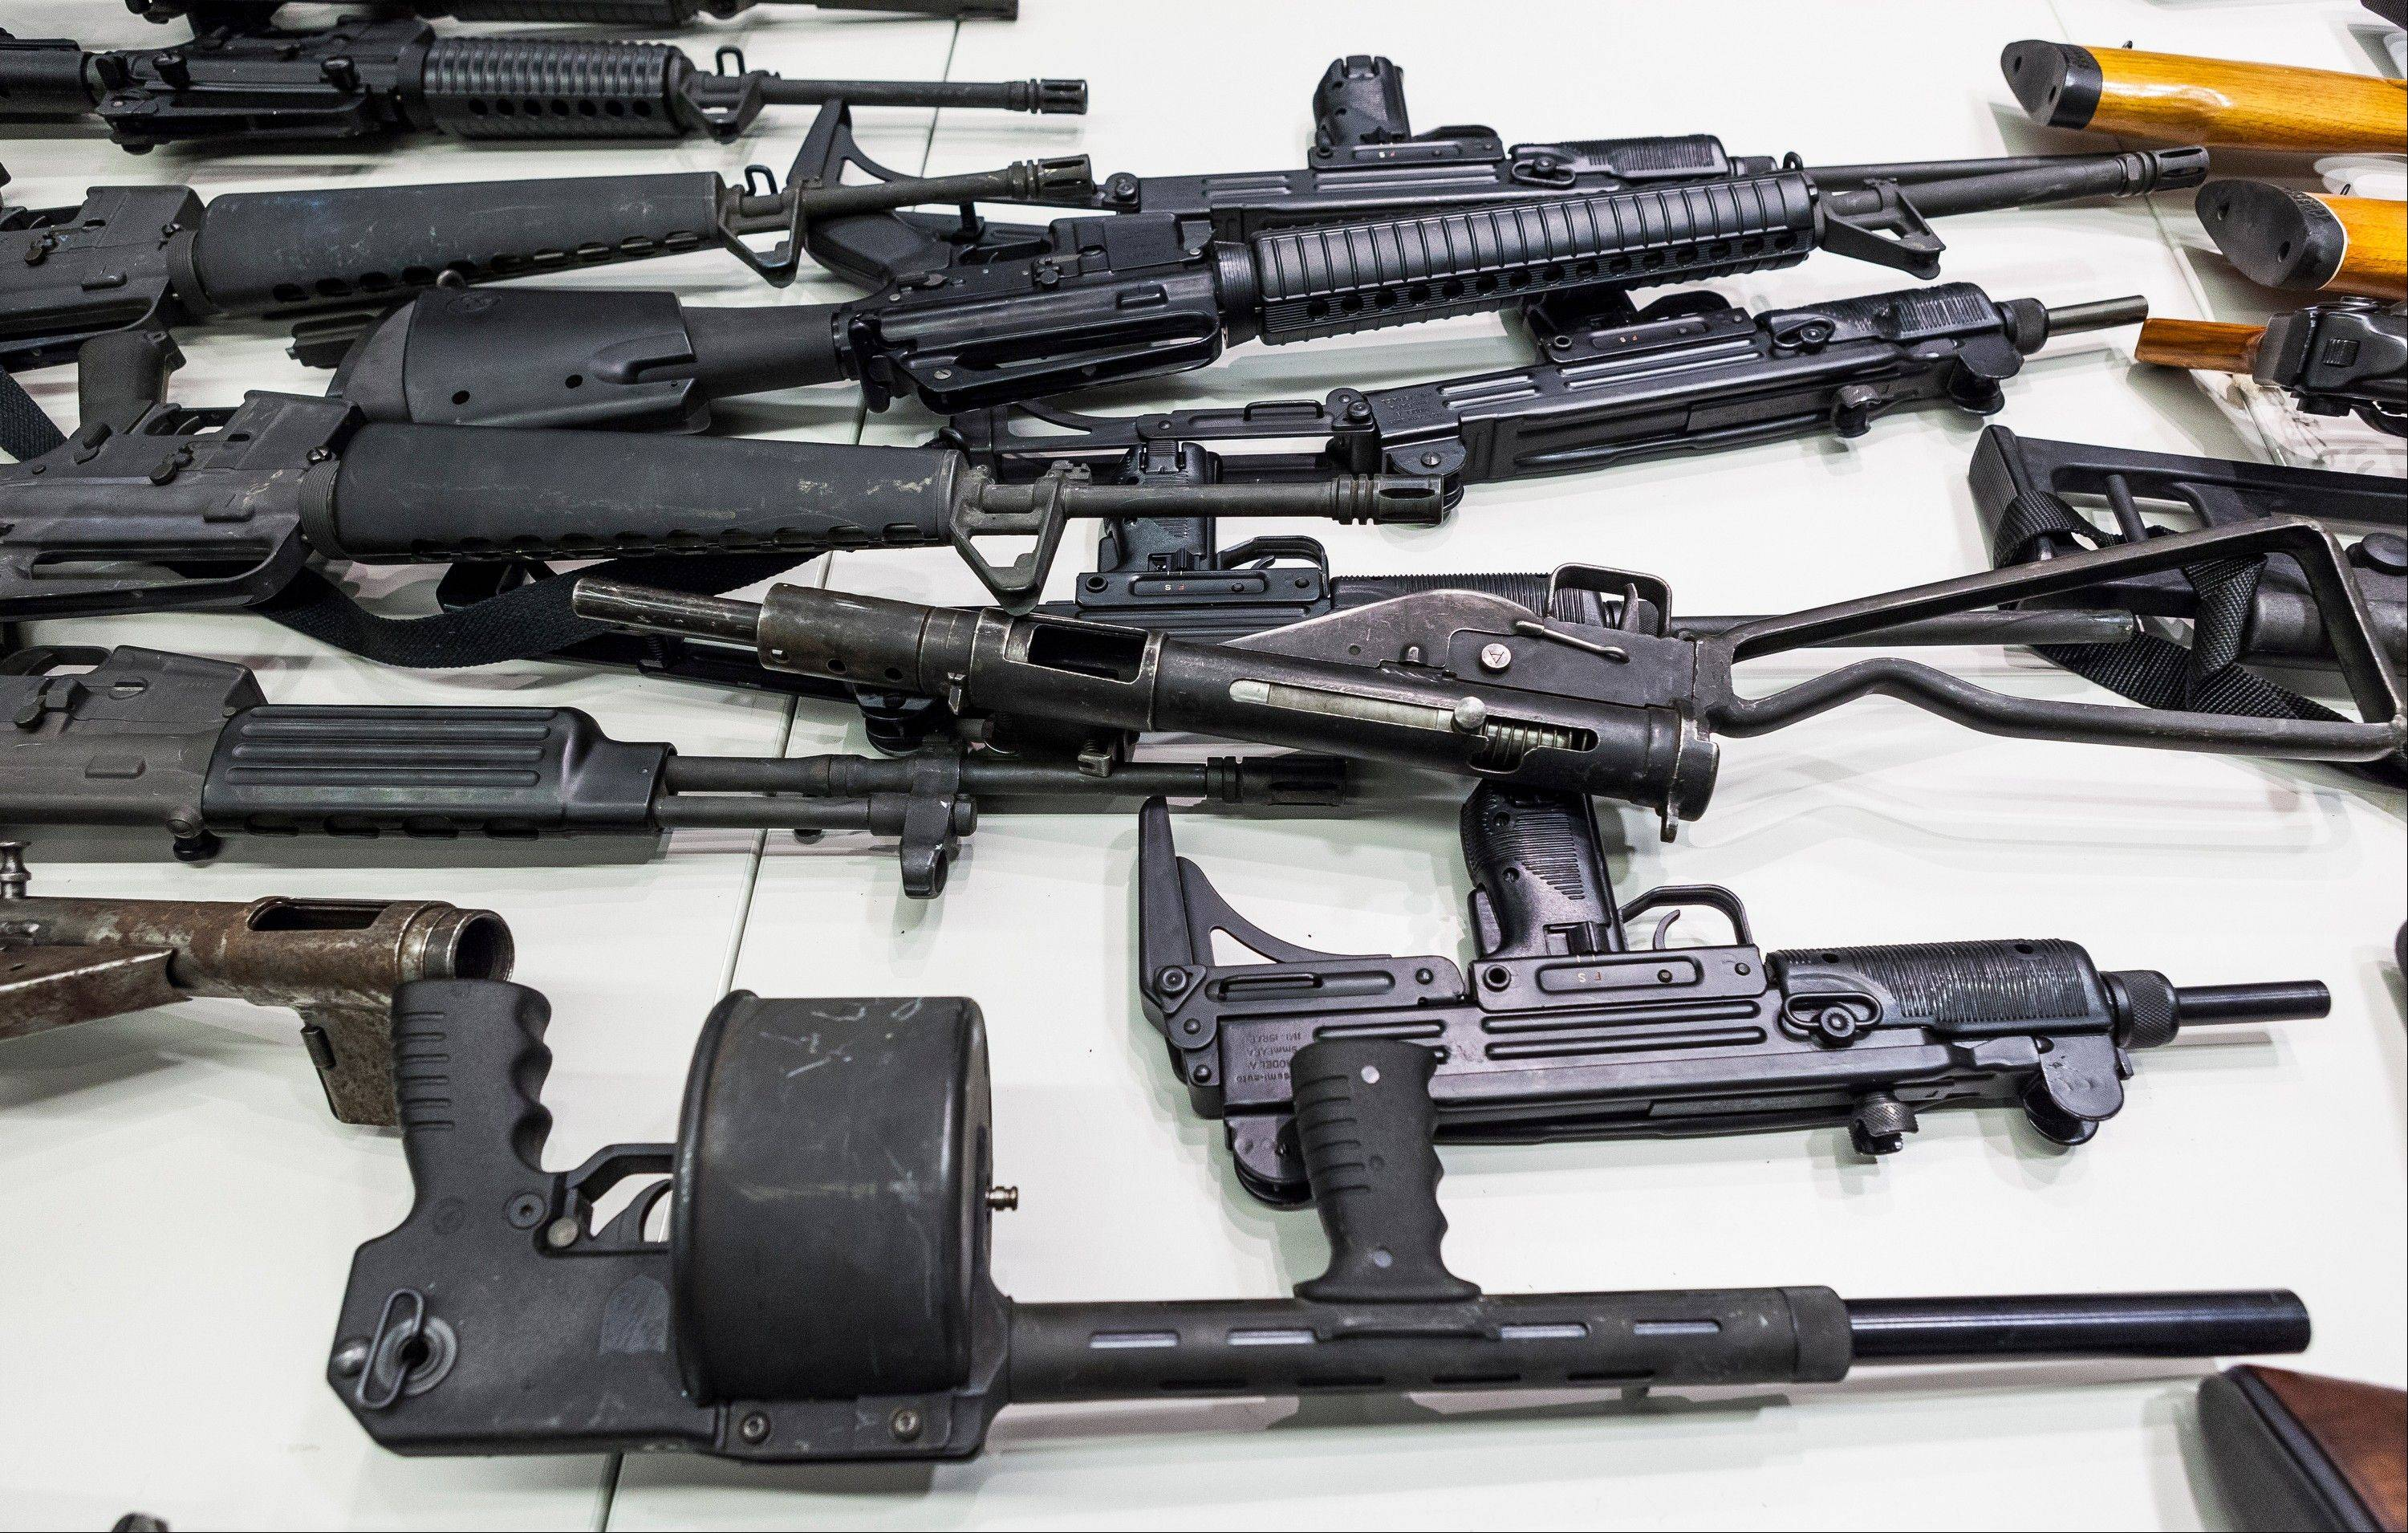 Some of the weapons collected in Los Angeles' Gun Buyback event last month are seen here.